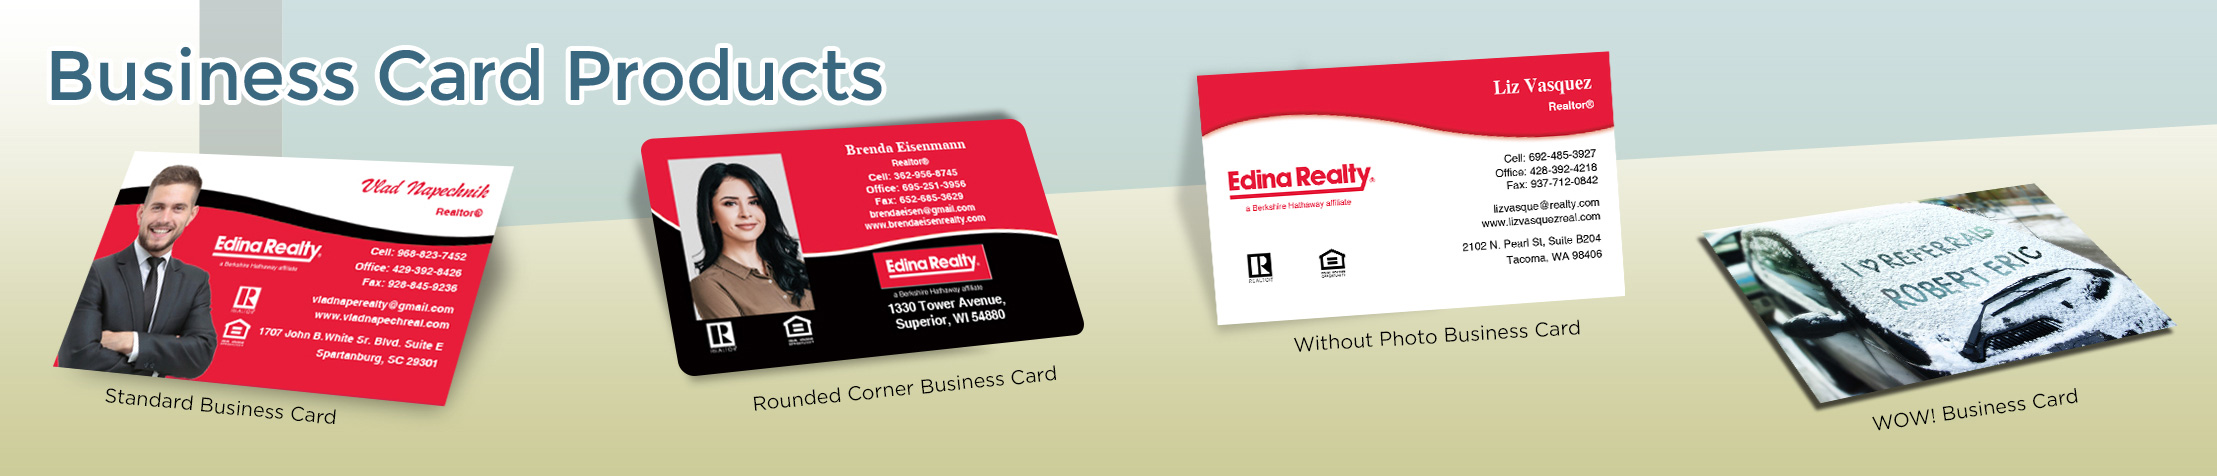 Edina Realty  Business Card Products - Edina Realty  - Unique, Custom Business Cards Printed on Quality Stock with Creative Designs for Realtors | BestPrintBuy.com